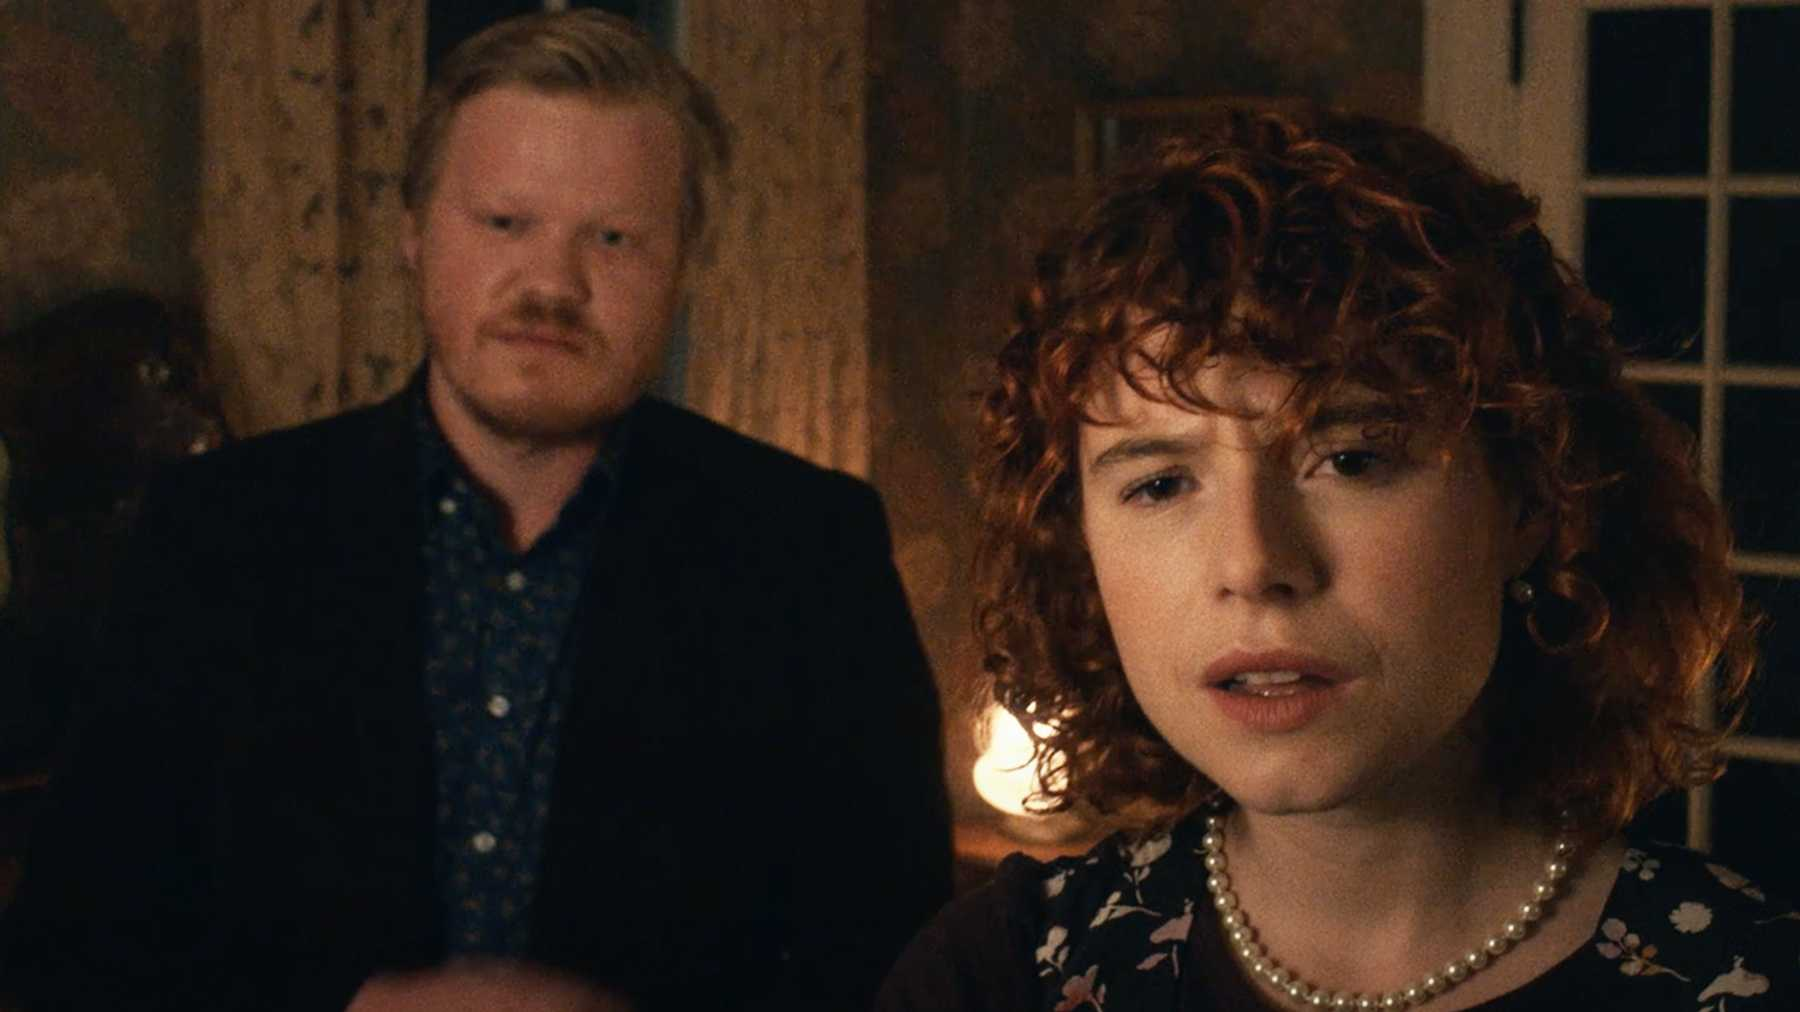 Jake (Jesse Plemons) and his girlfriend (Jessie Buckley) in I'm Thinking of Ending Things (2020)